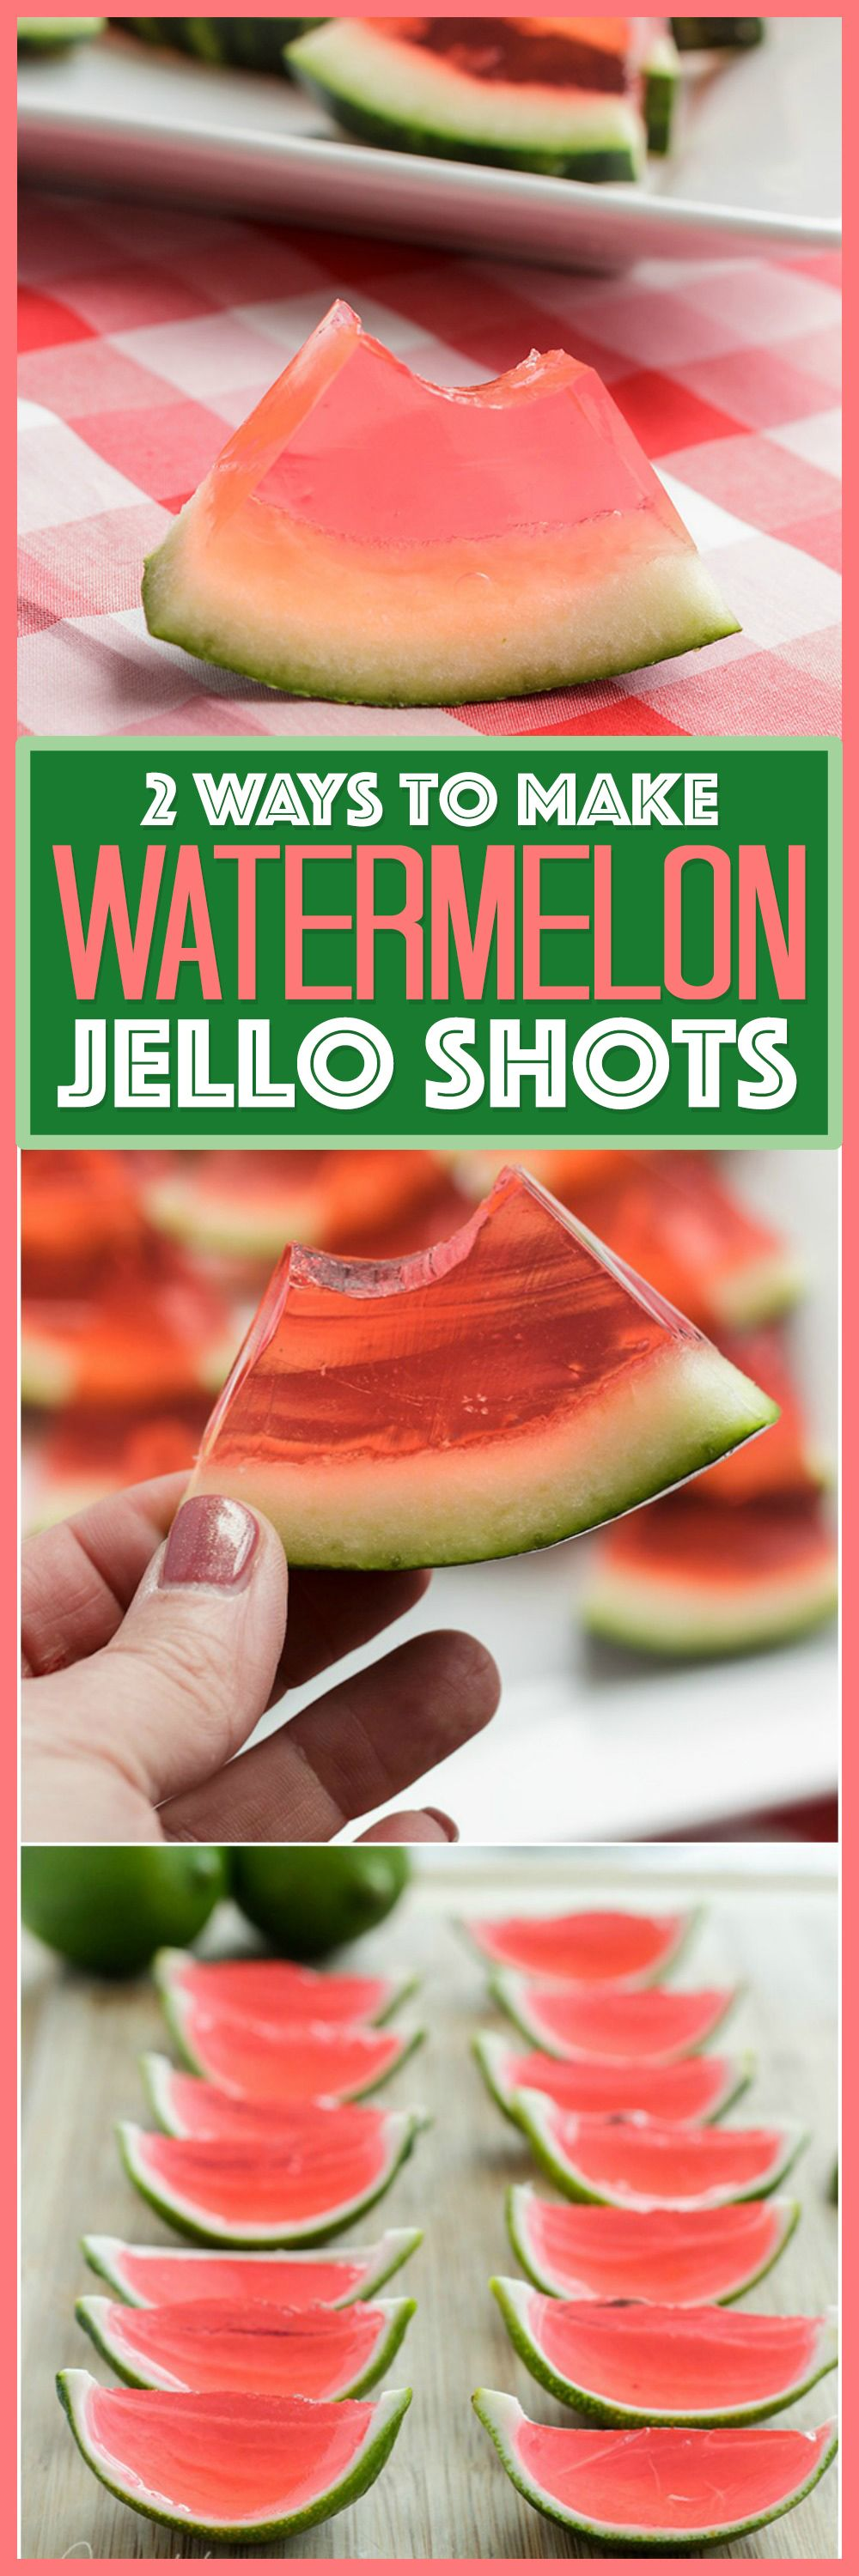 These Watermelon Jello Shots are a party favorite! Jello shots are perfect to bring to BBQ's, potlucks, camping or any type of gathering. (Favorite Desserts Potlucks) #jelloshots